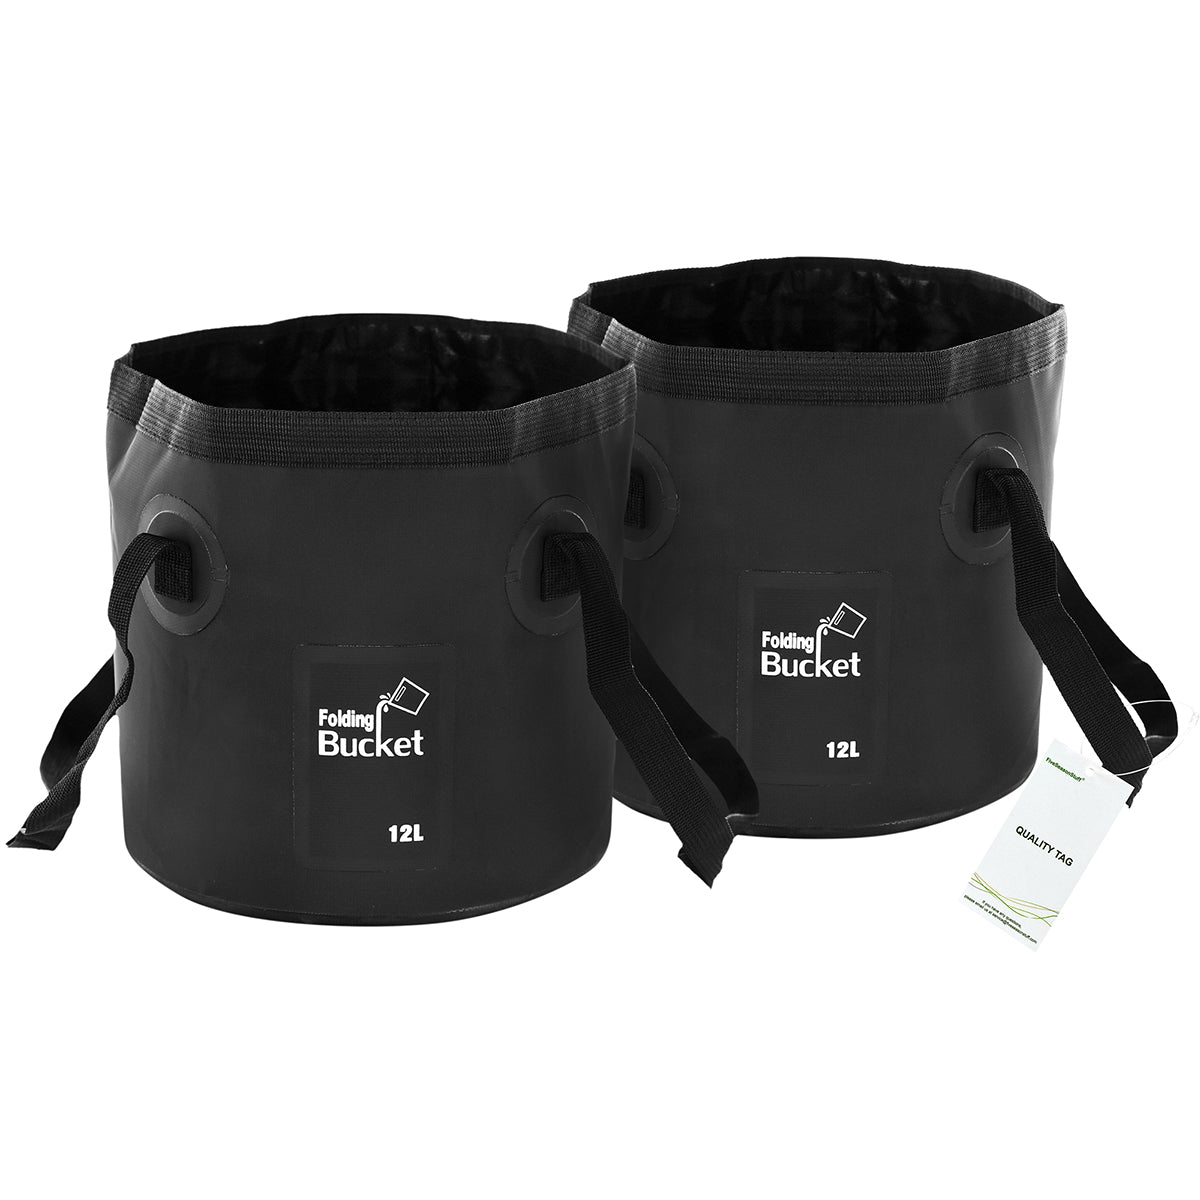 Two standing black foldable buckets with handles display with a white background